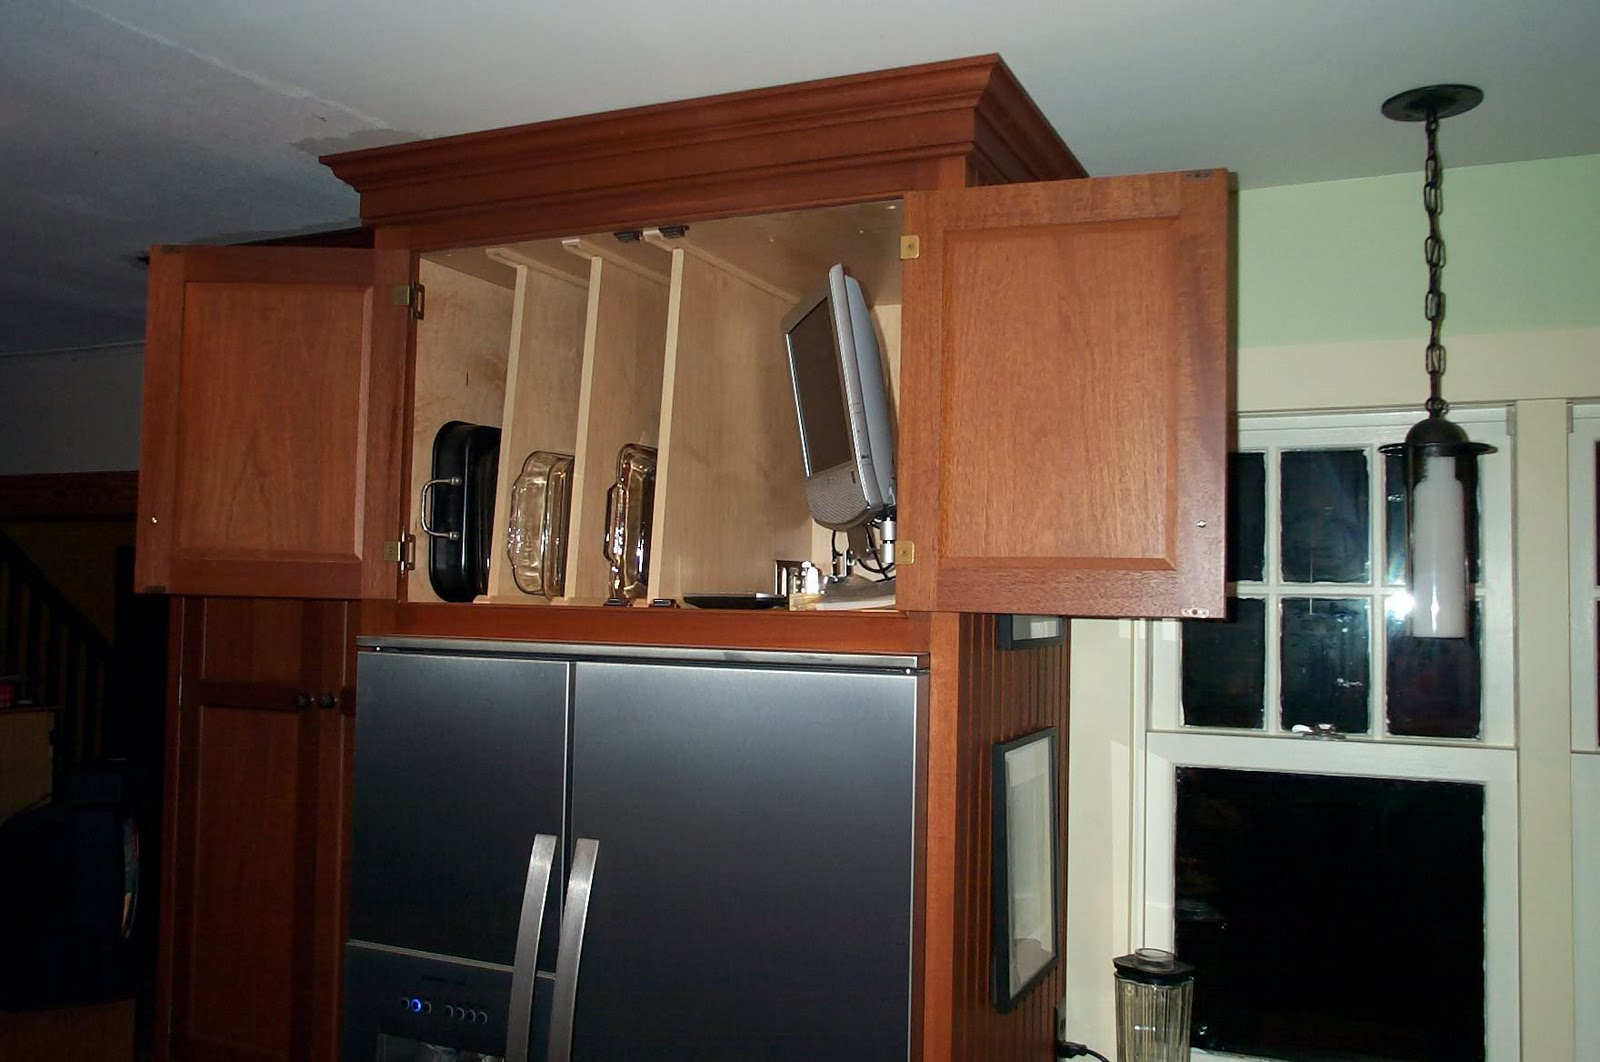 Over the fridge cabinet